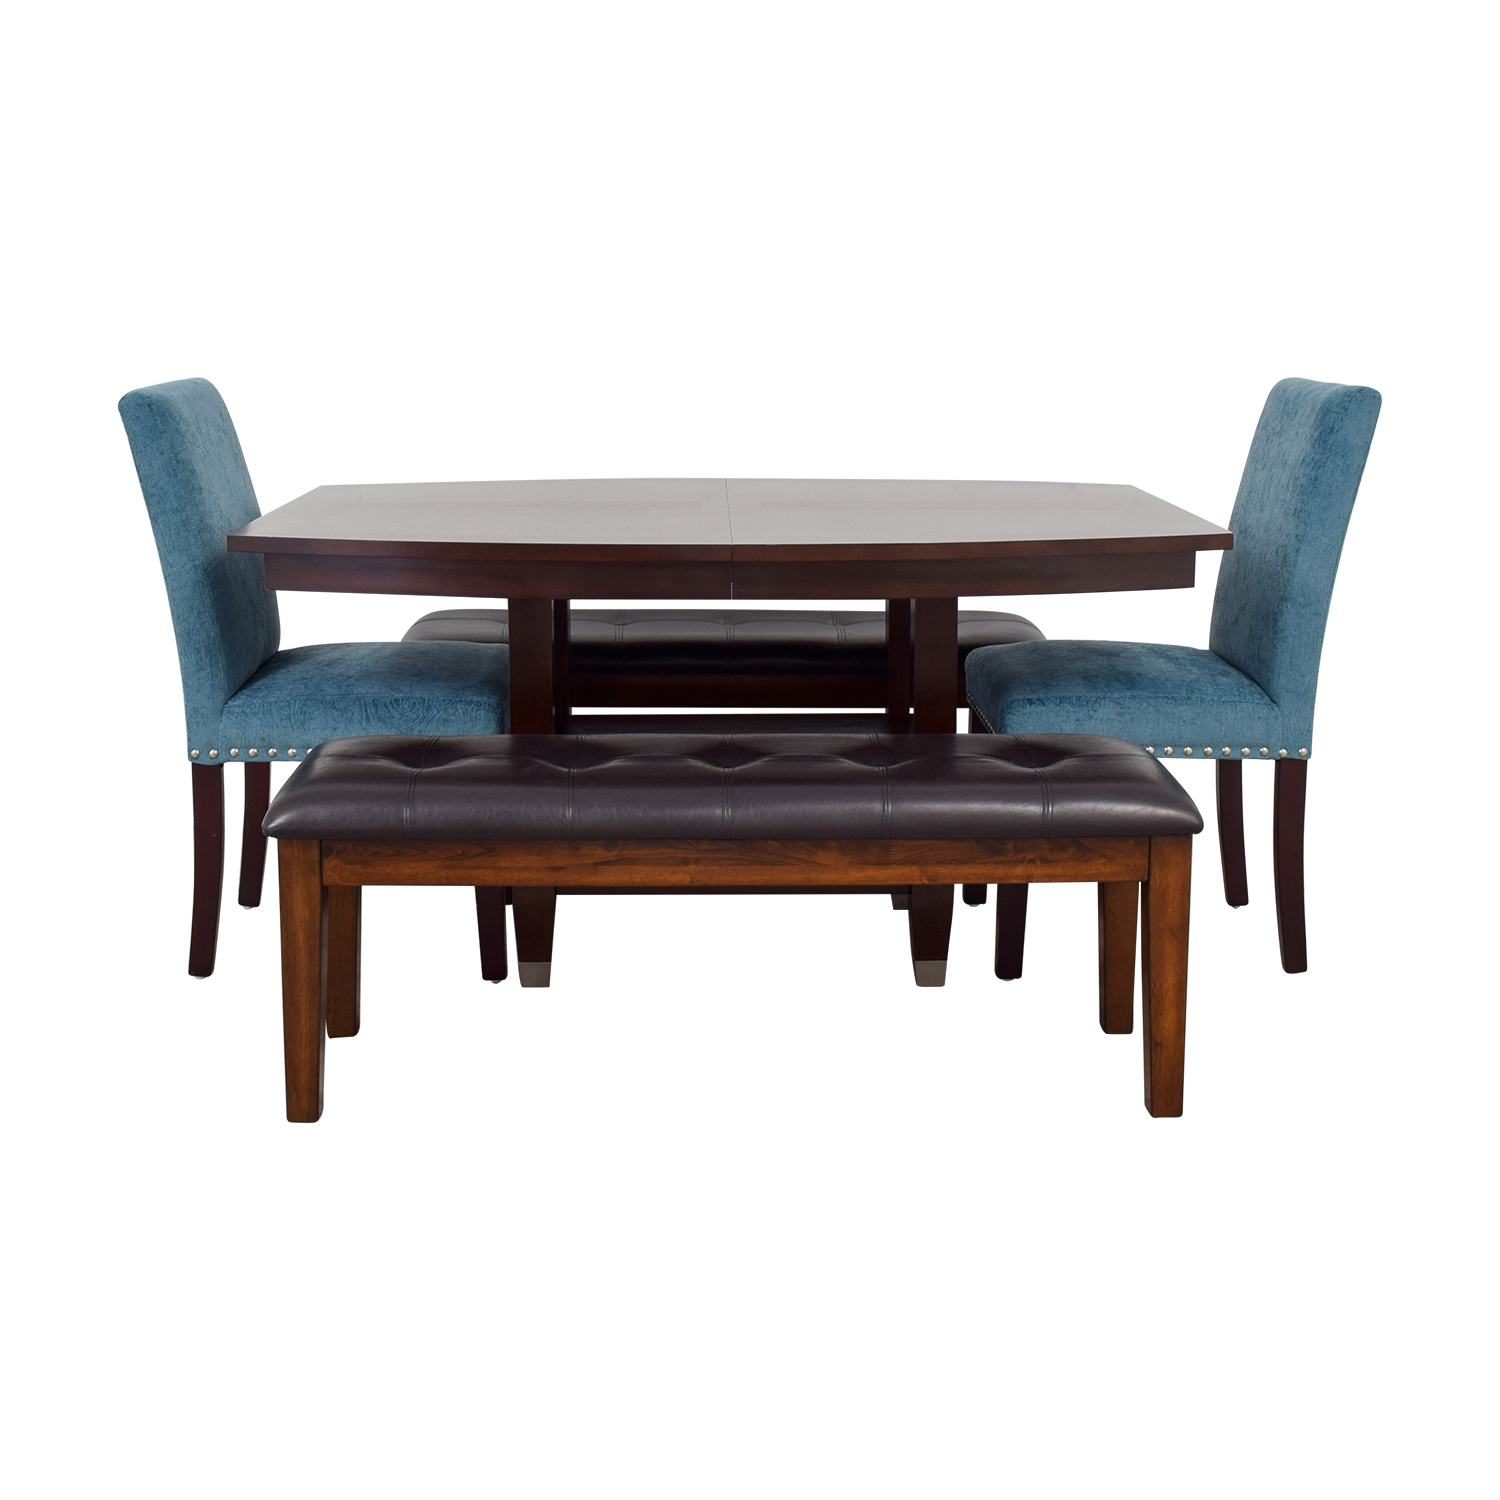 Raymour & Flanigan Raymour & Flanigan Dining Set with Benches and Chairs nj